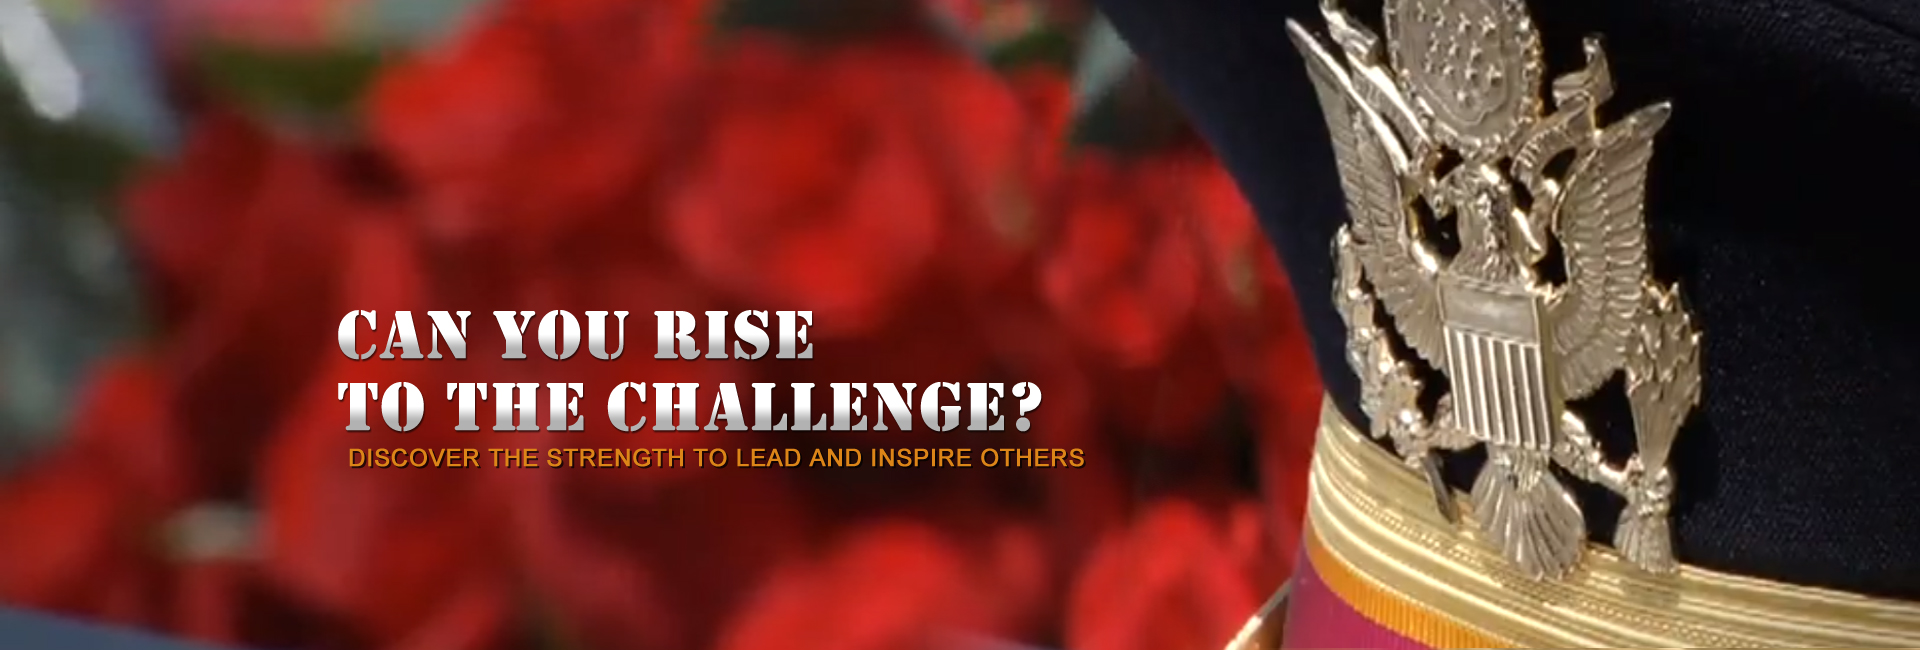 Can you rise to the challenge